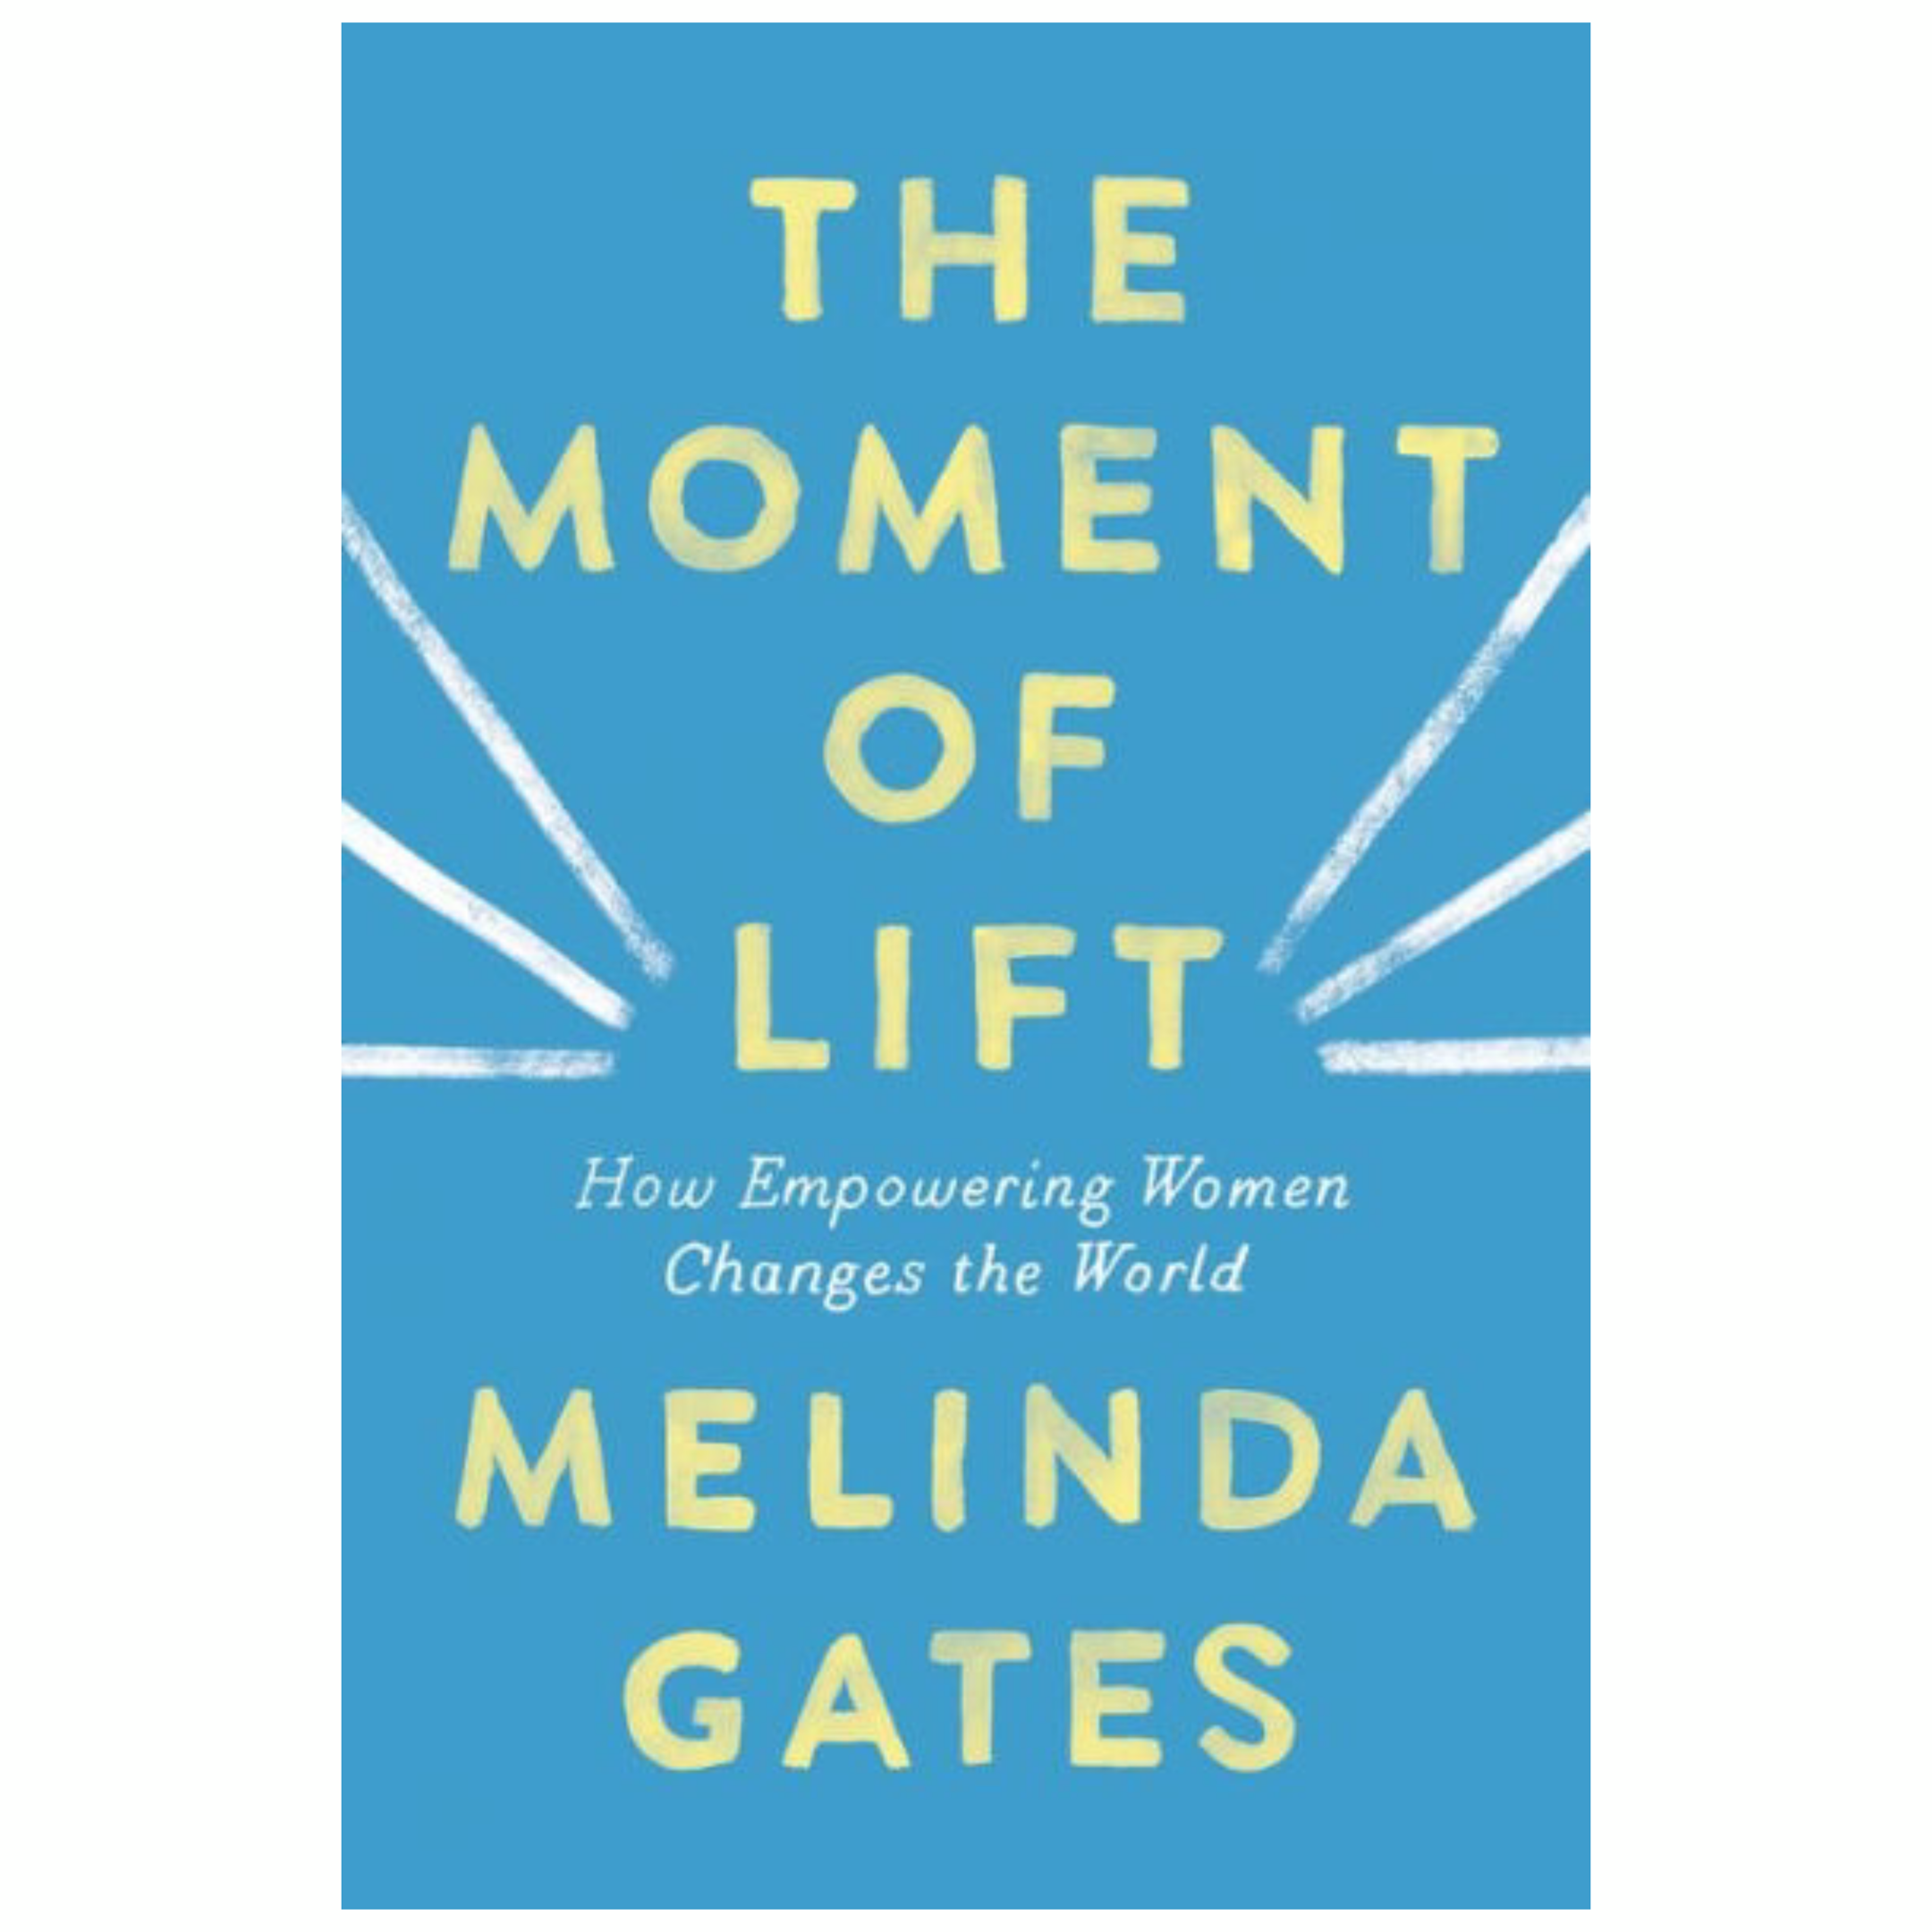 The Moment of Lift by Melinda Gates | Cedar + Surf Must Read List